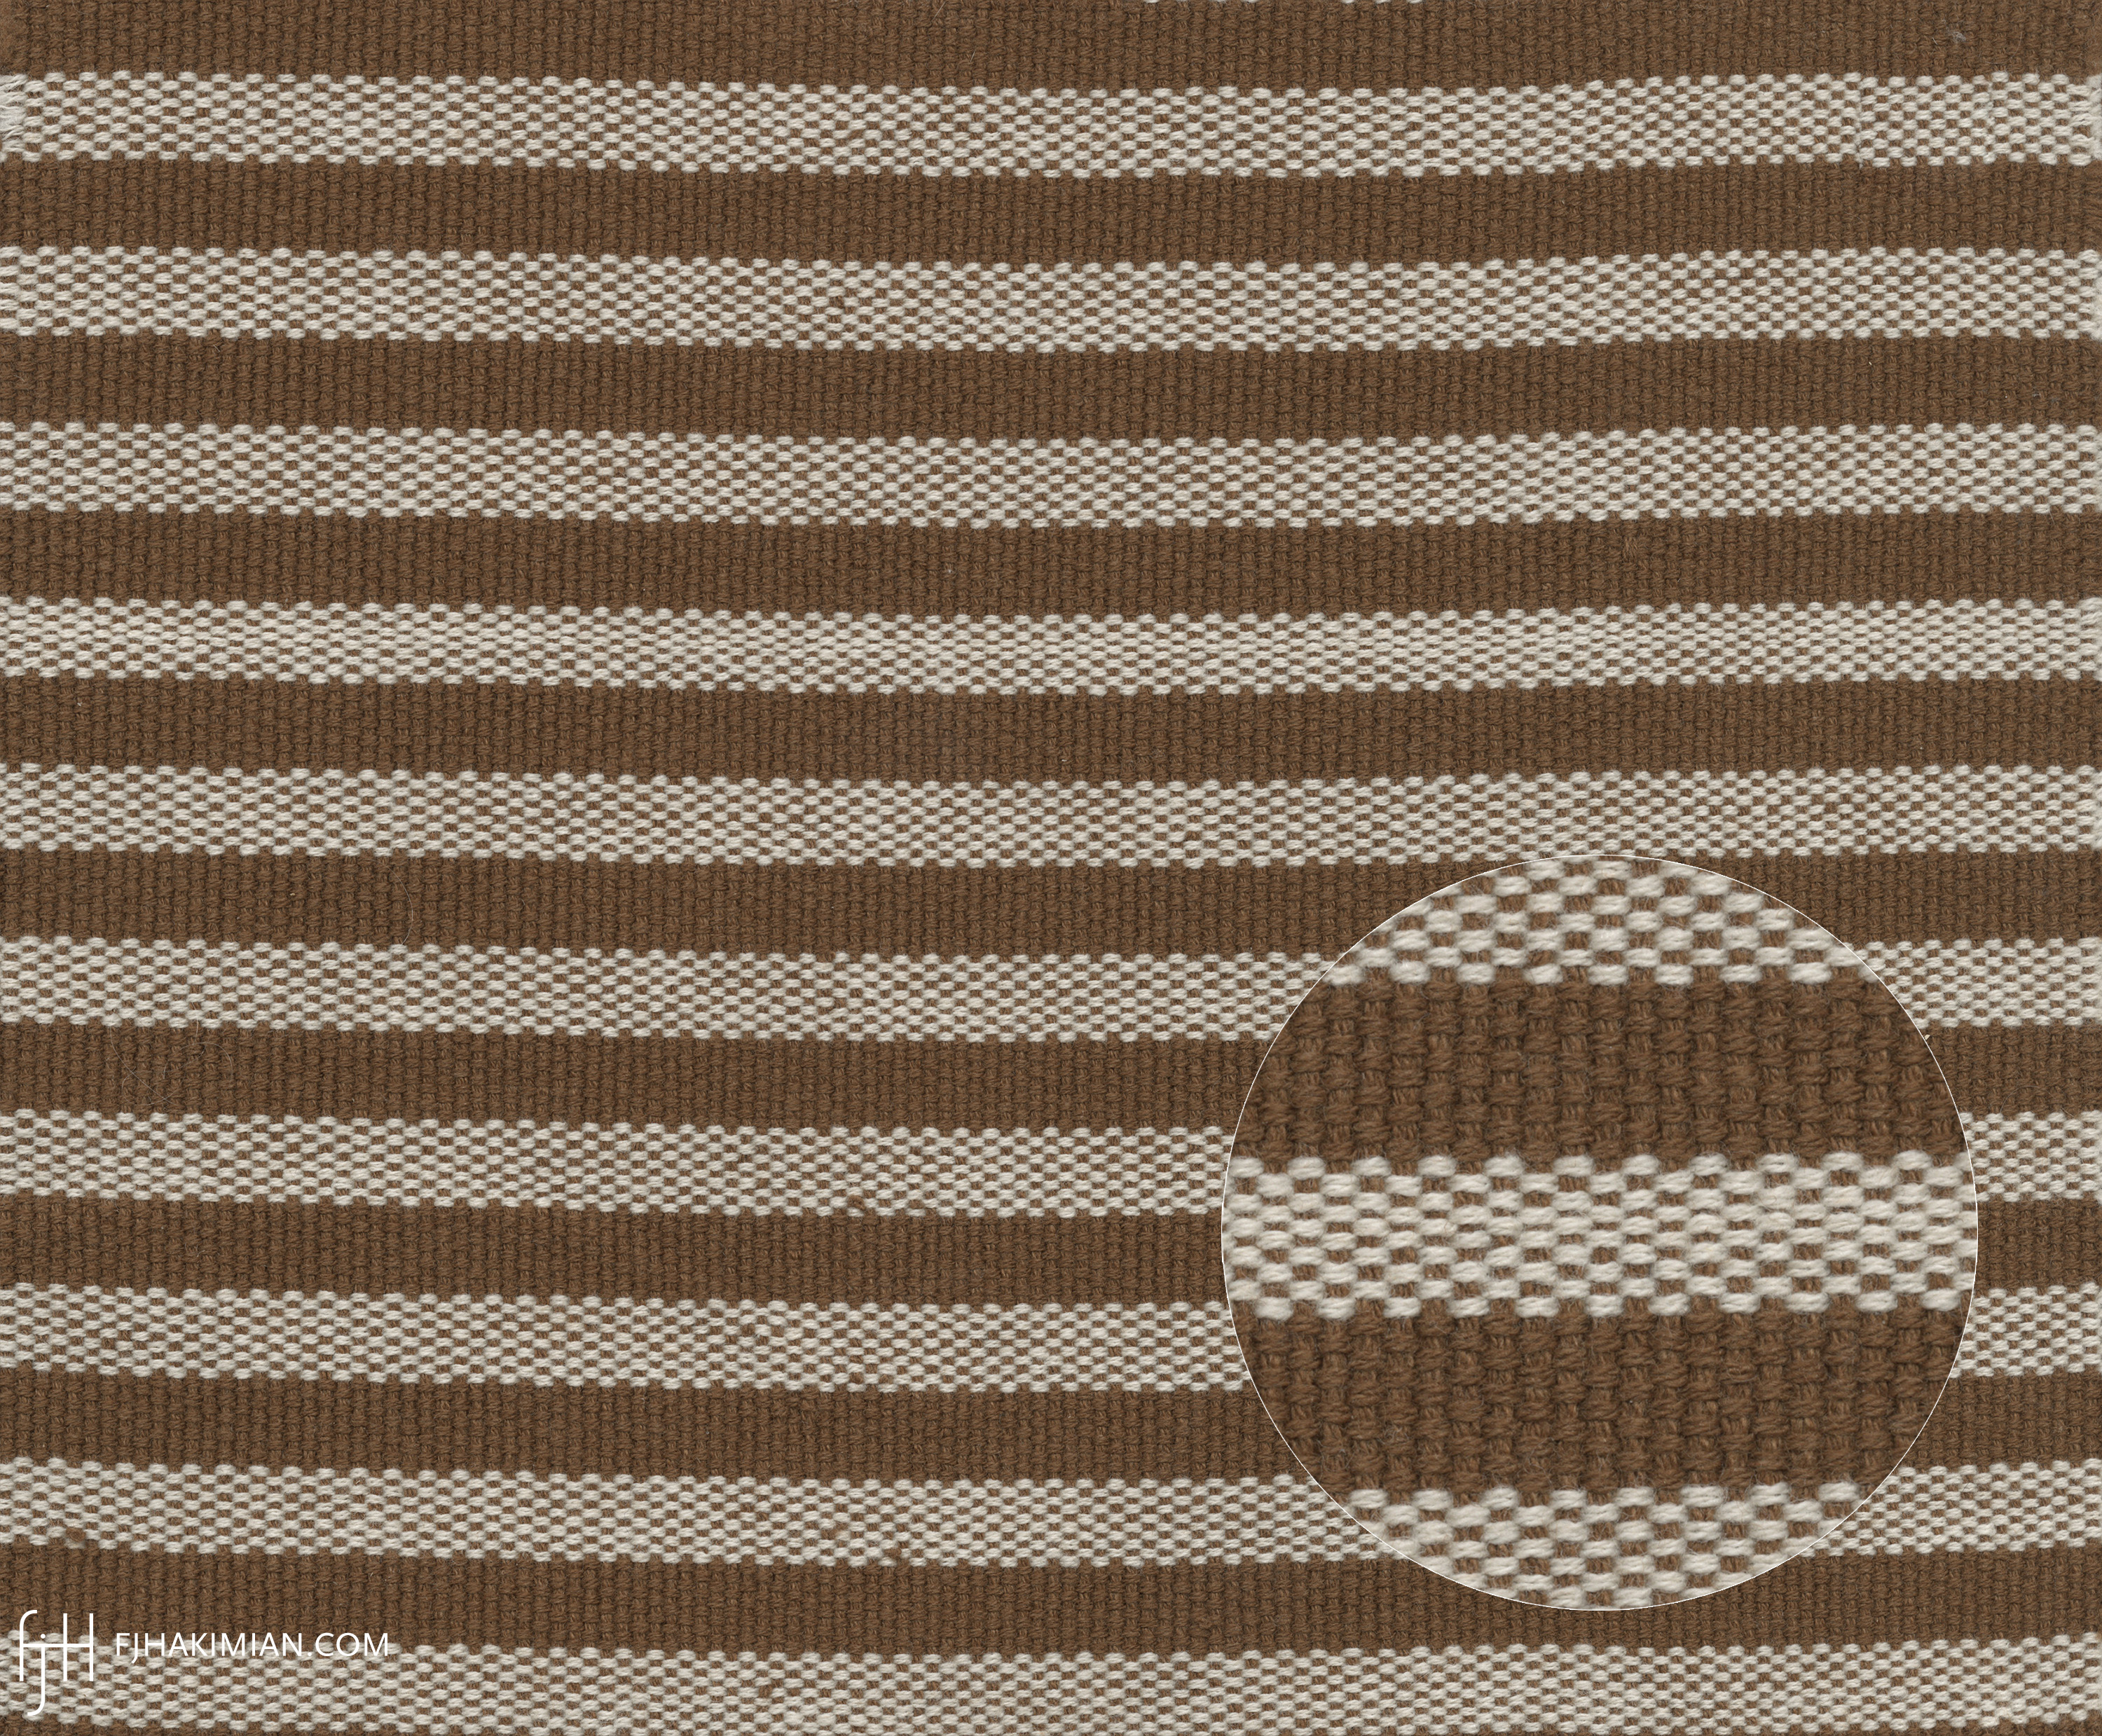 Upholstery Fabric WY-03R-Bone-Brown | FJ Hakimian